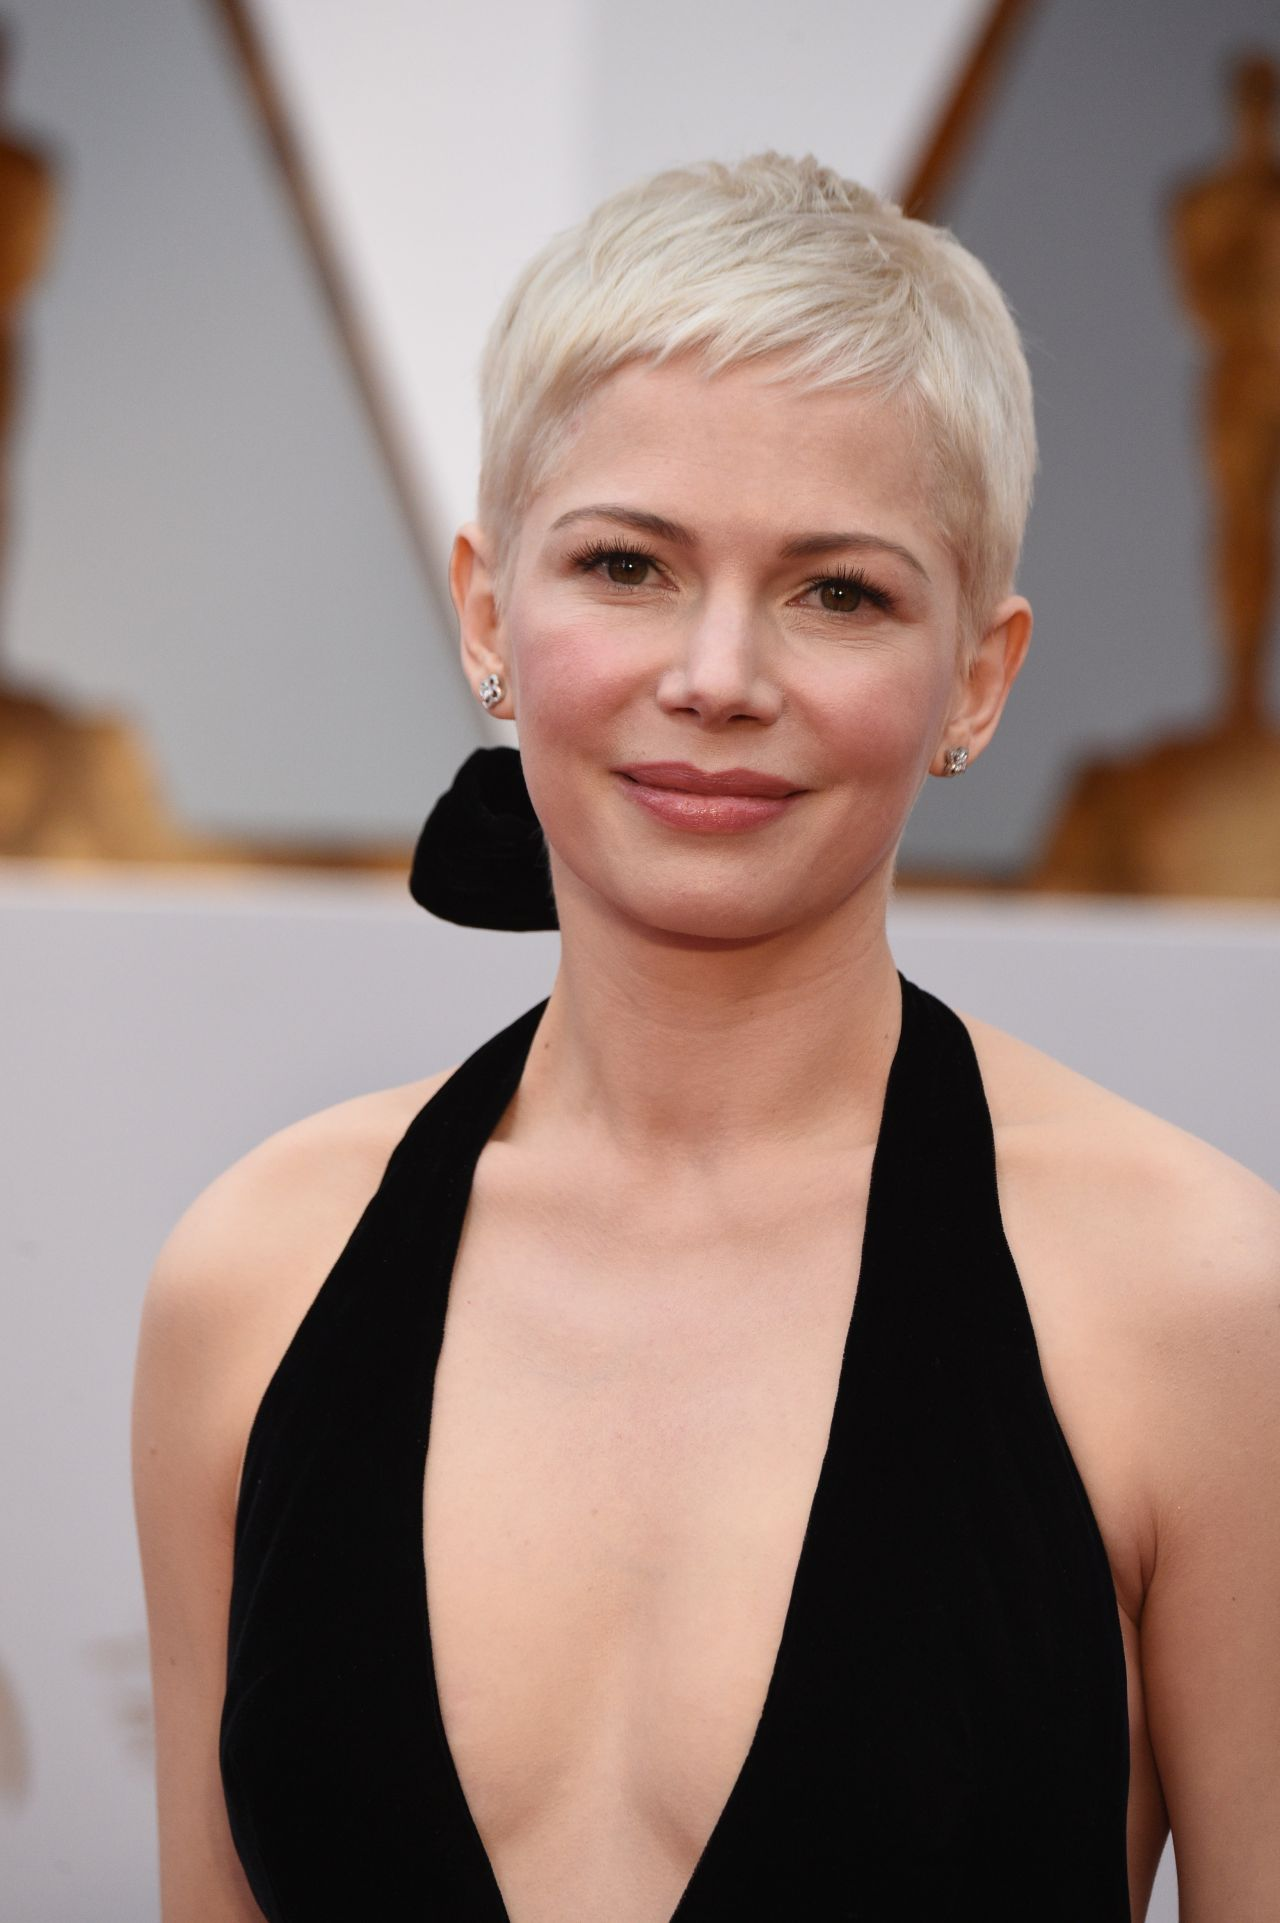 michelle-williams-oscars-2017-red-carpet-in-hollywood-2.jpg